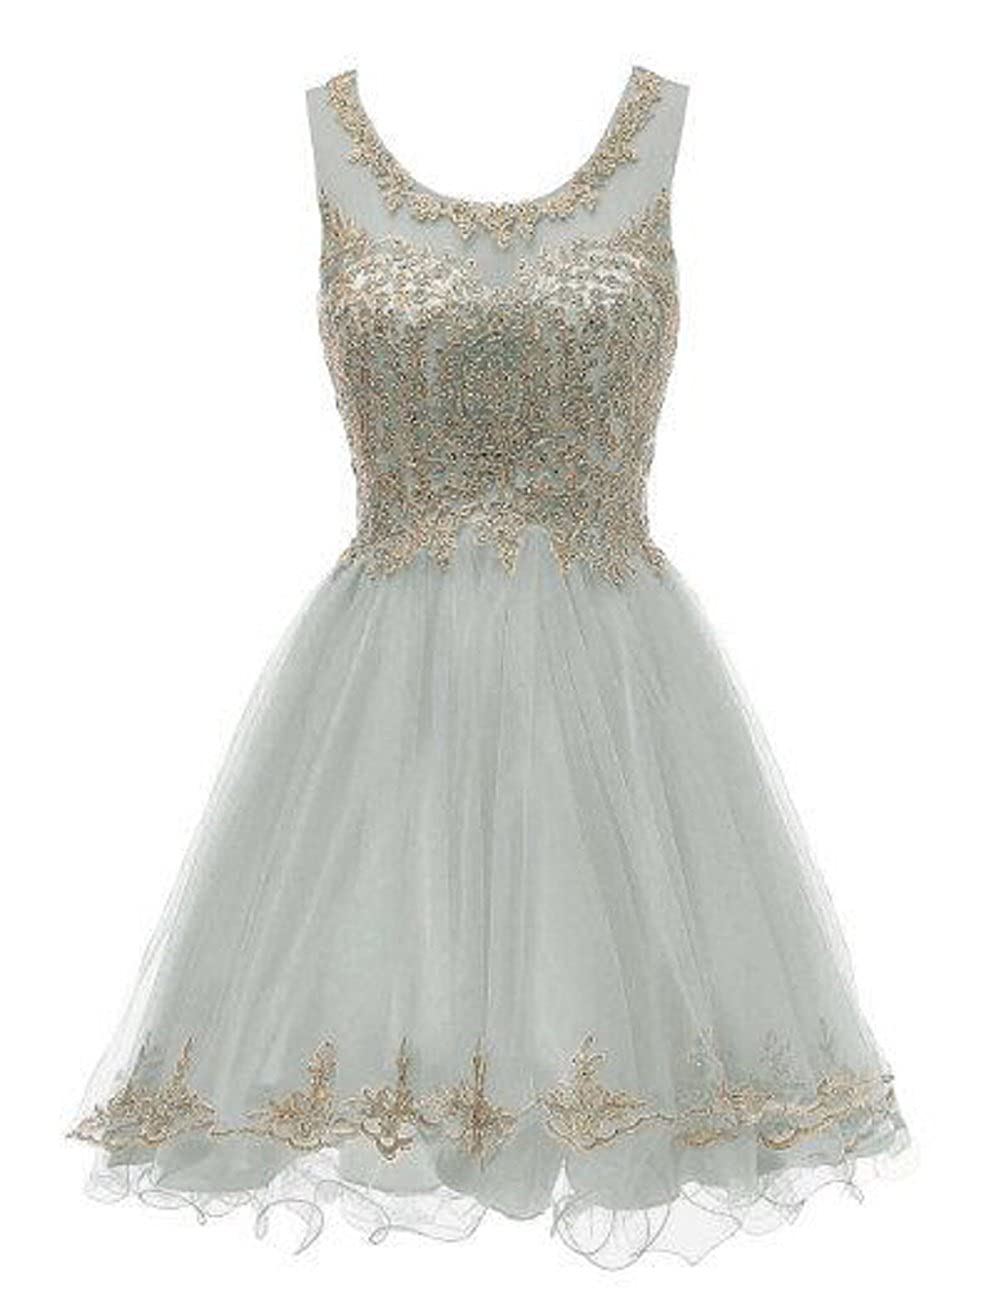 Grey1189 SHANGSHANGXI Lace Appliques Short Prom Dresses Tulle Beaded Homecoming Party Dress